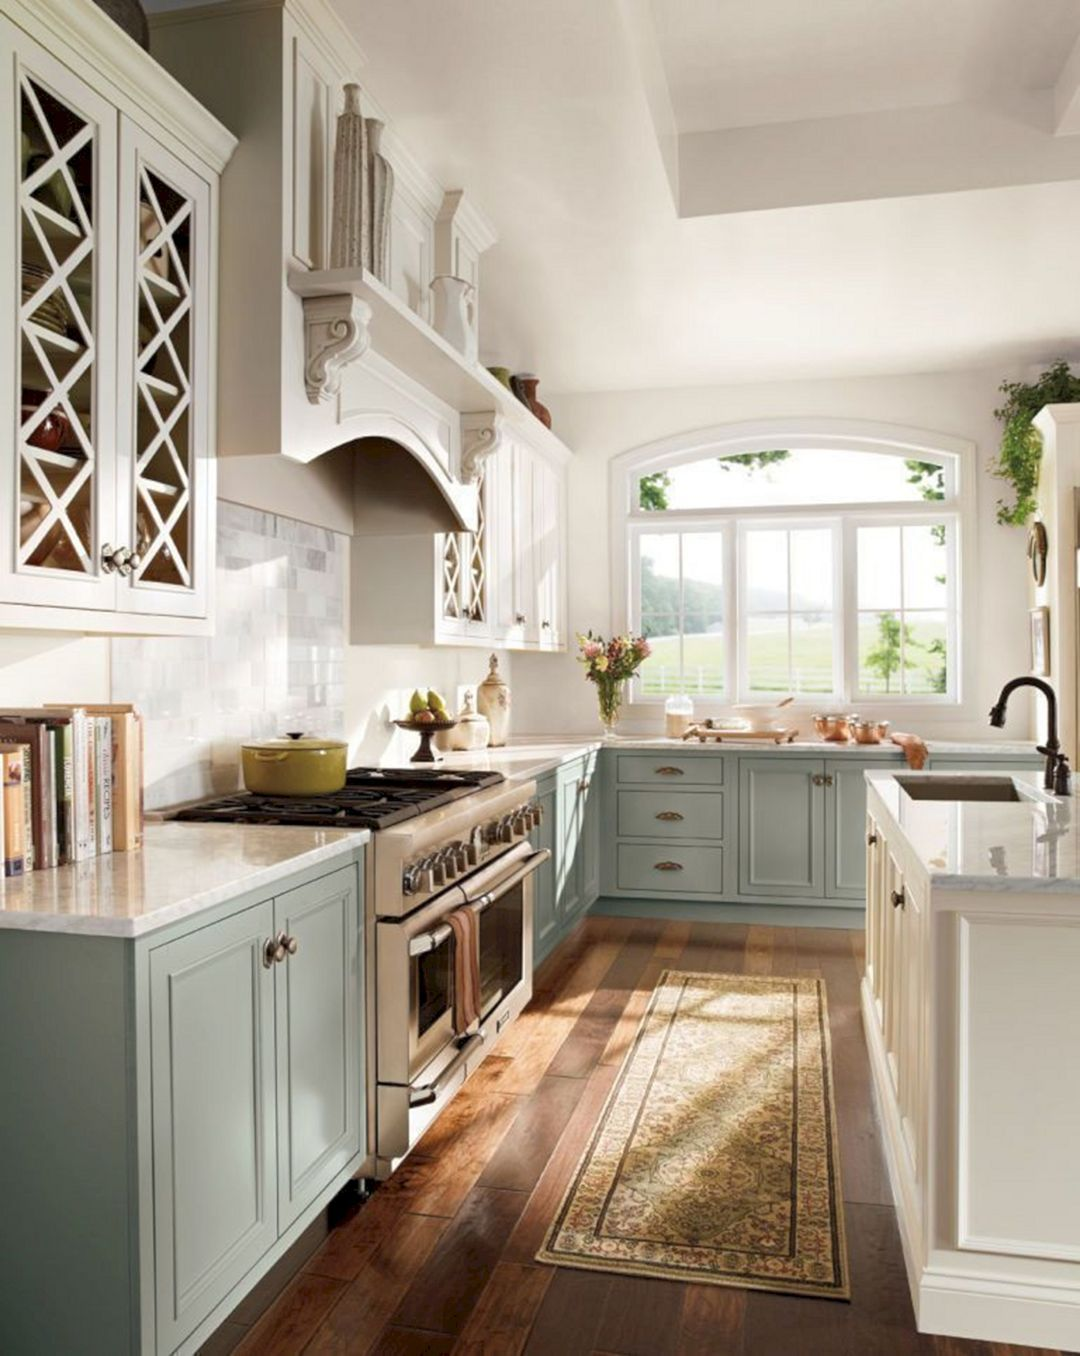 12+ Beautiful Simple French Country Kitchen Ideas For